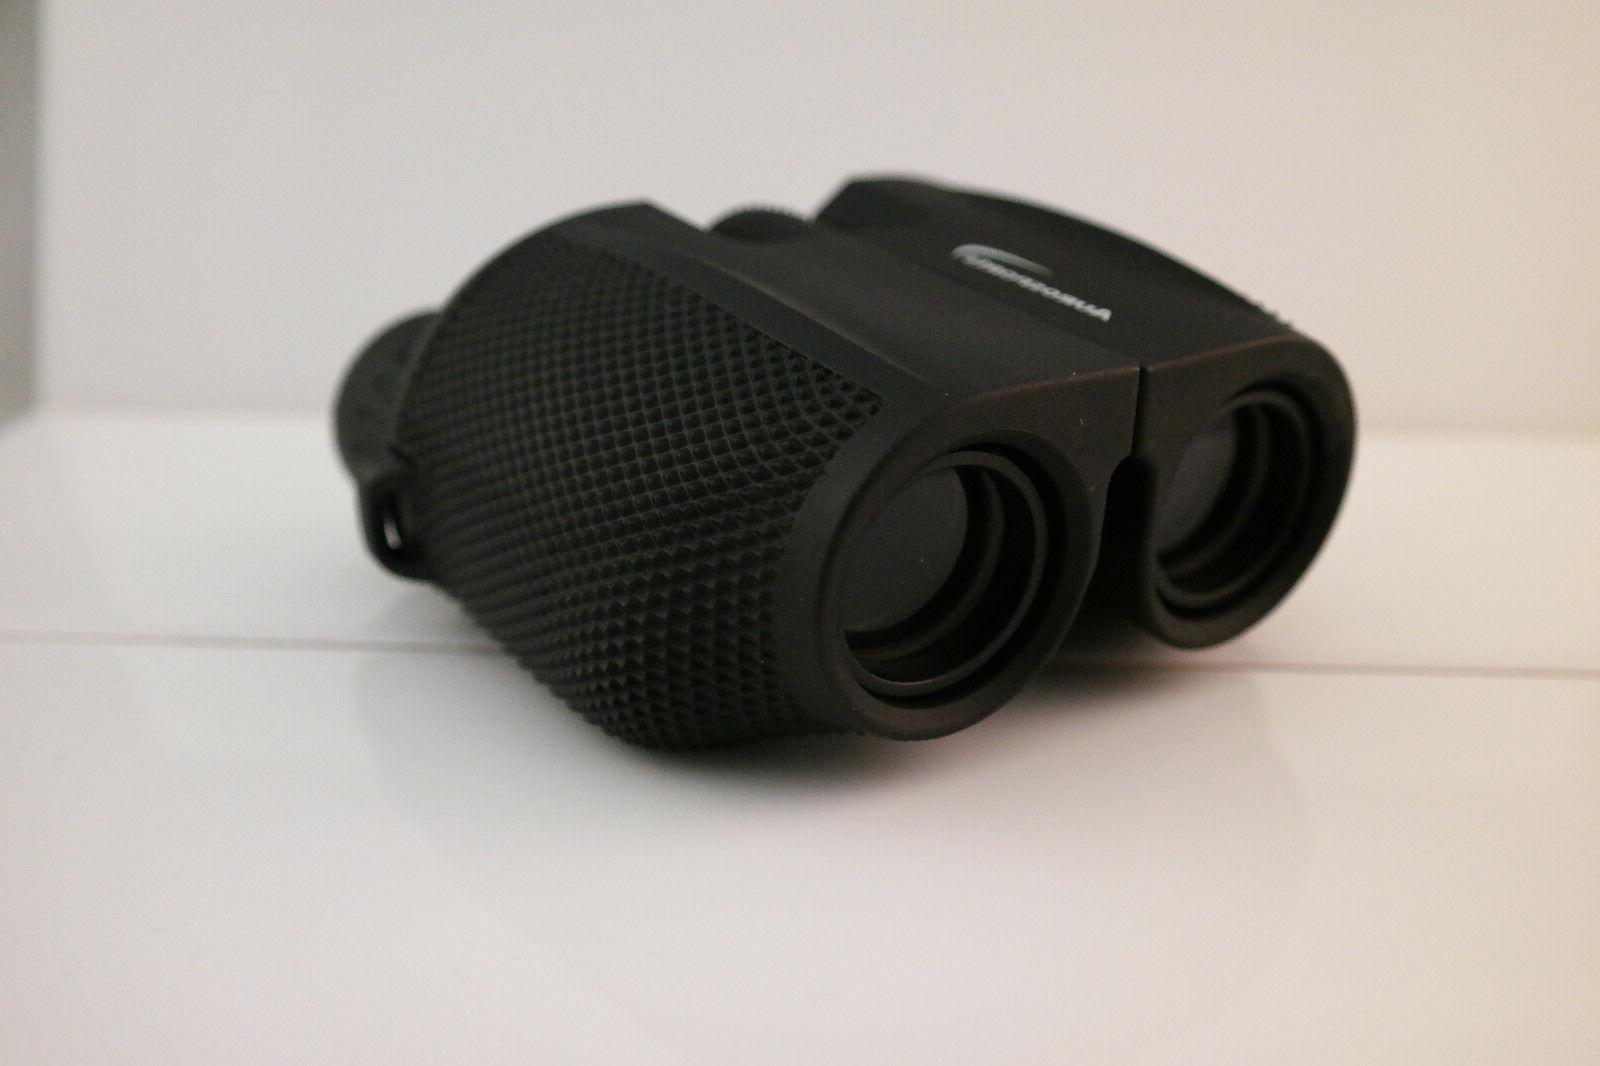 10x25 binoculars low light level vision compact